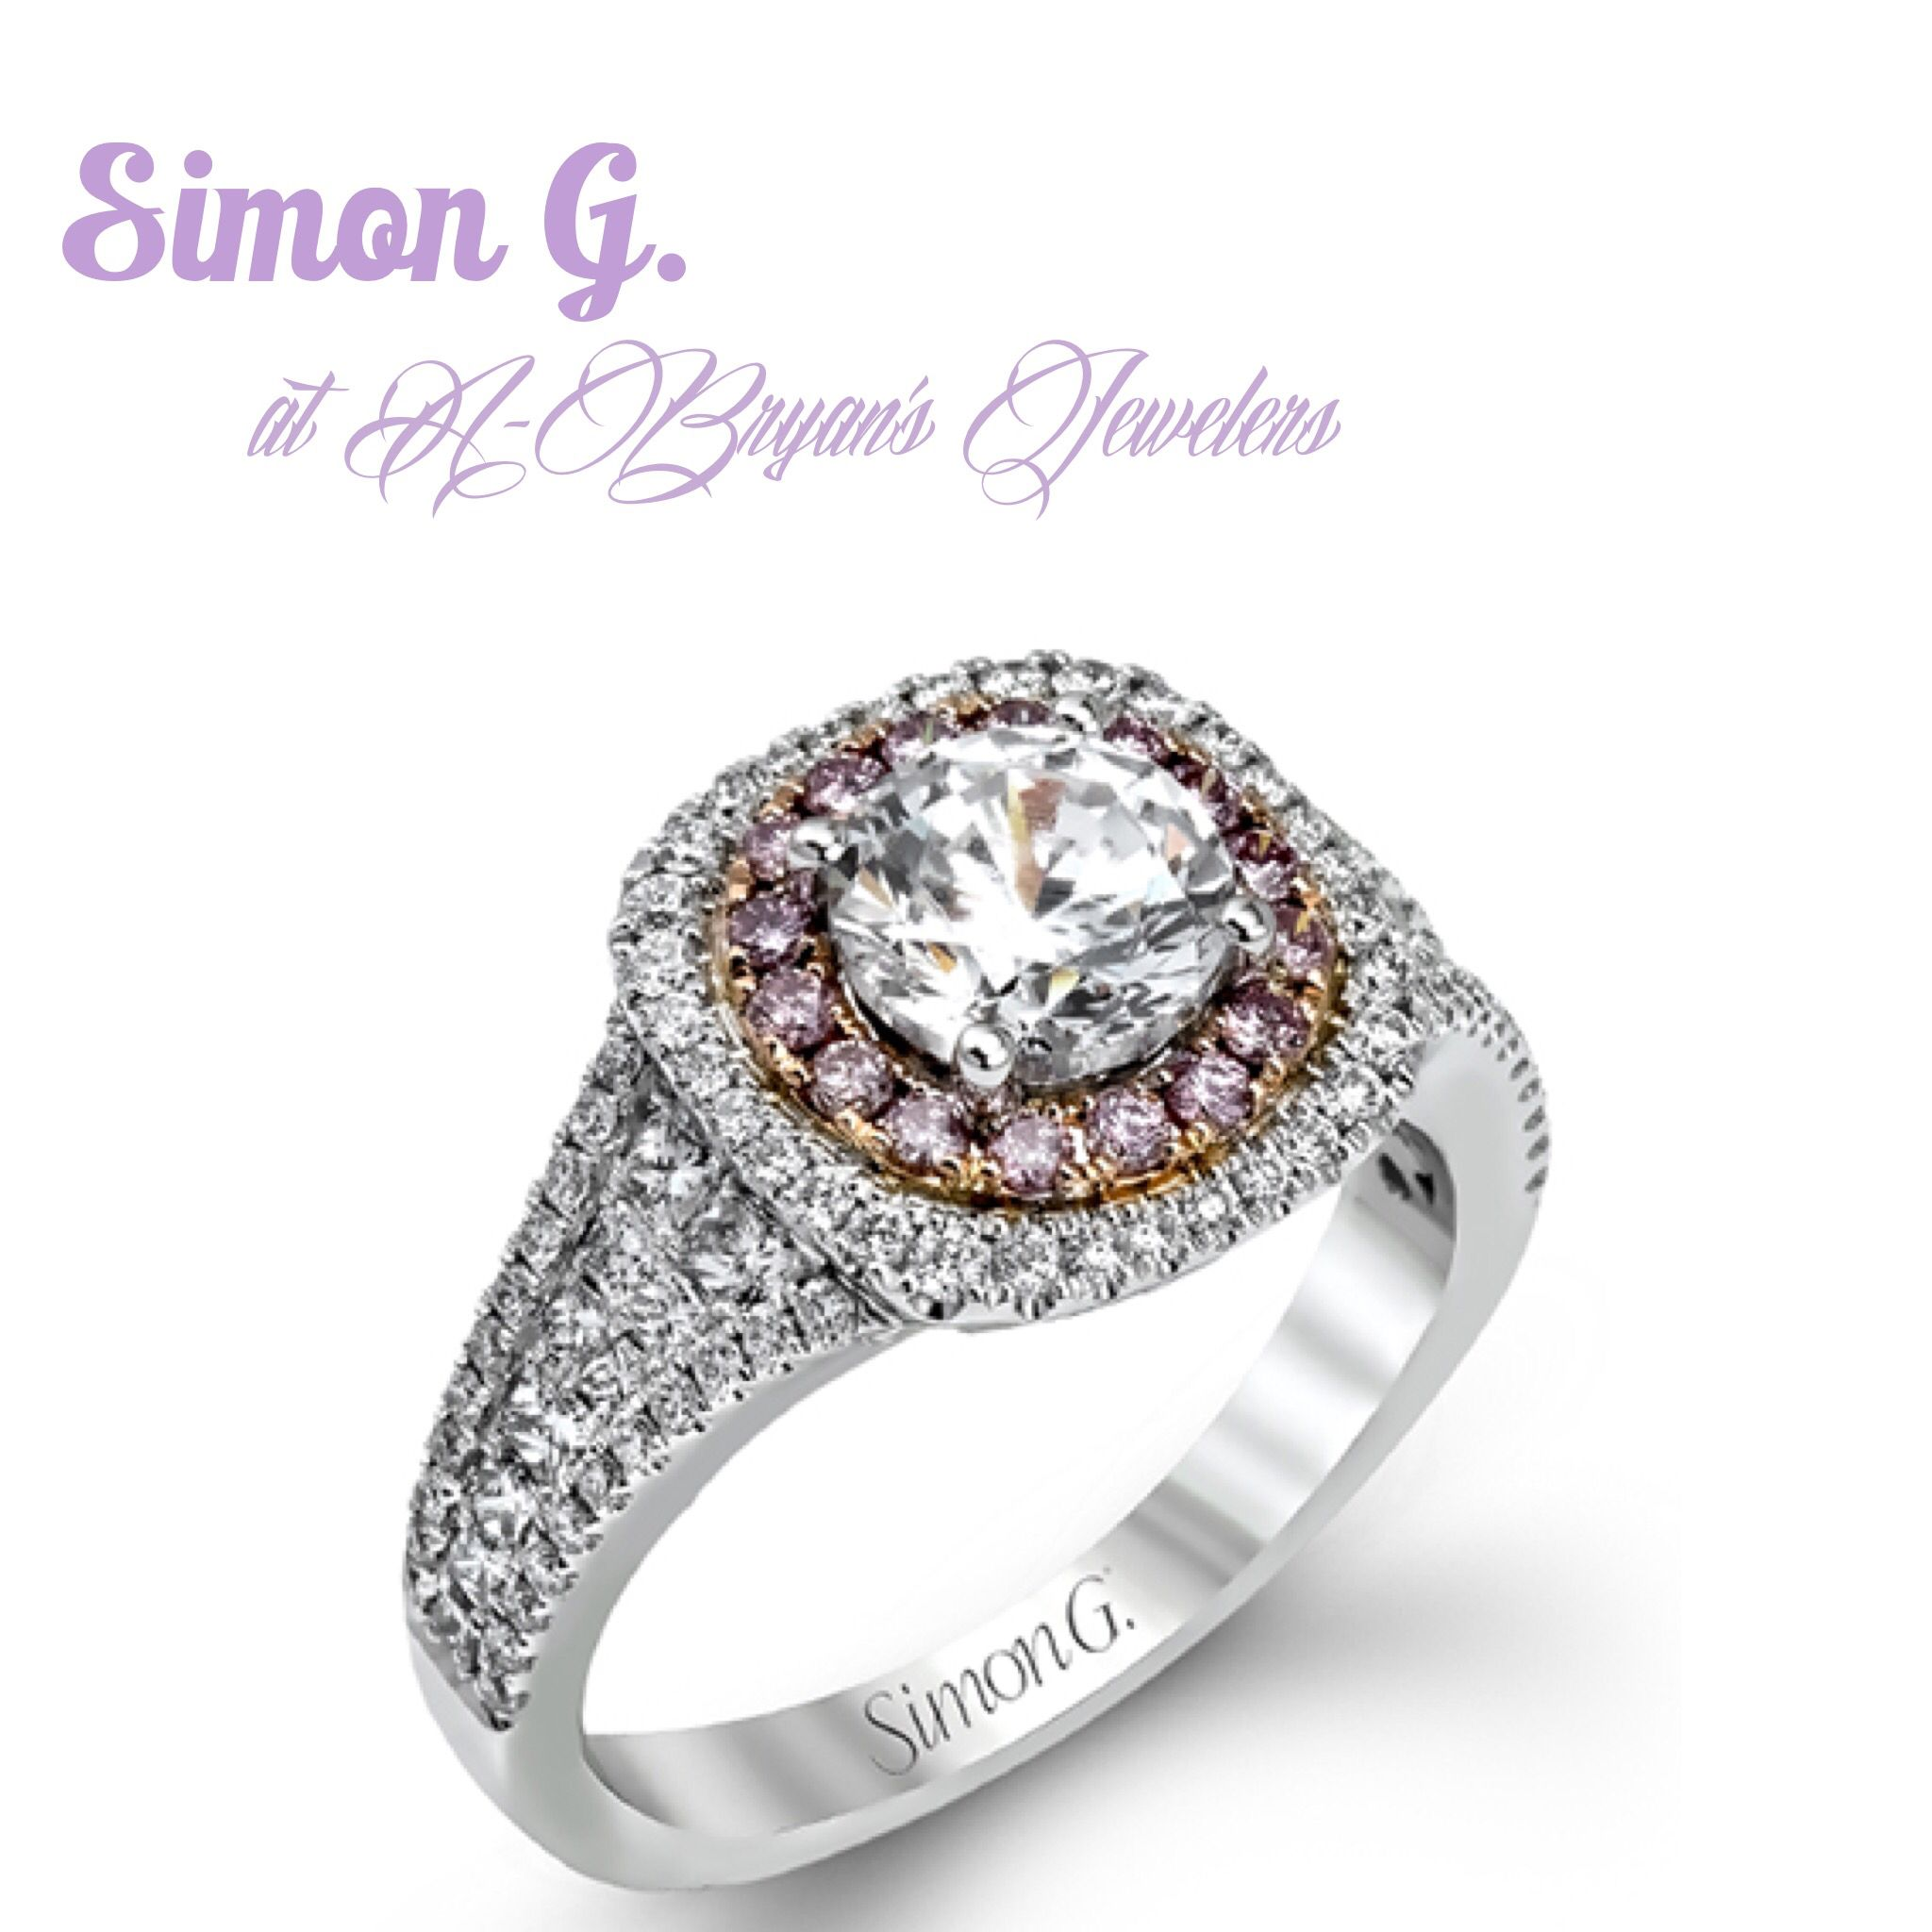 simon jewelers g beckers engagement rings